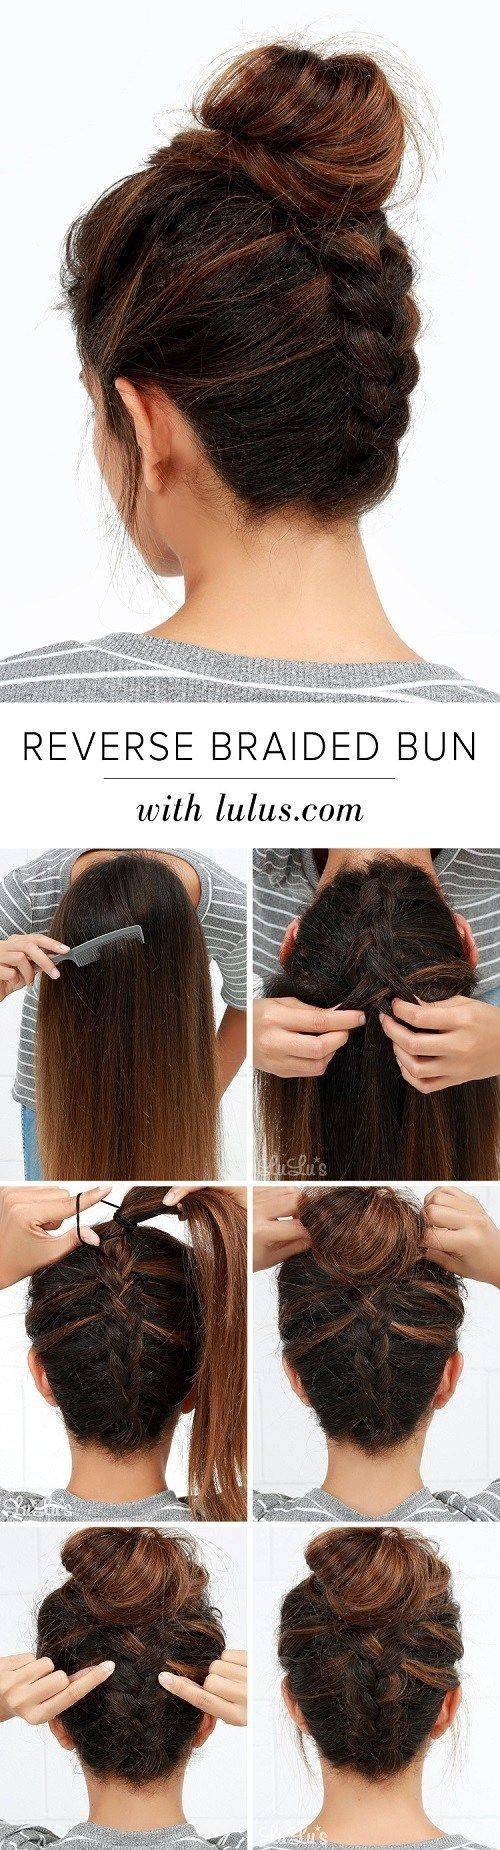 How to Create Hair Bun in Just 2 Minutes